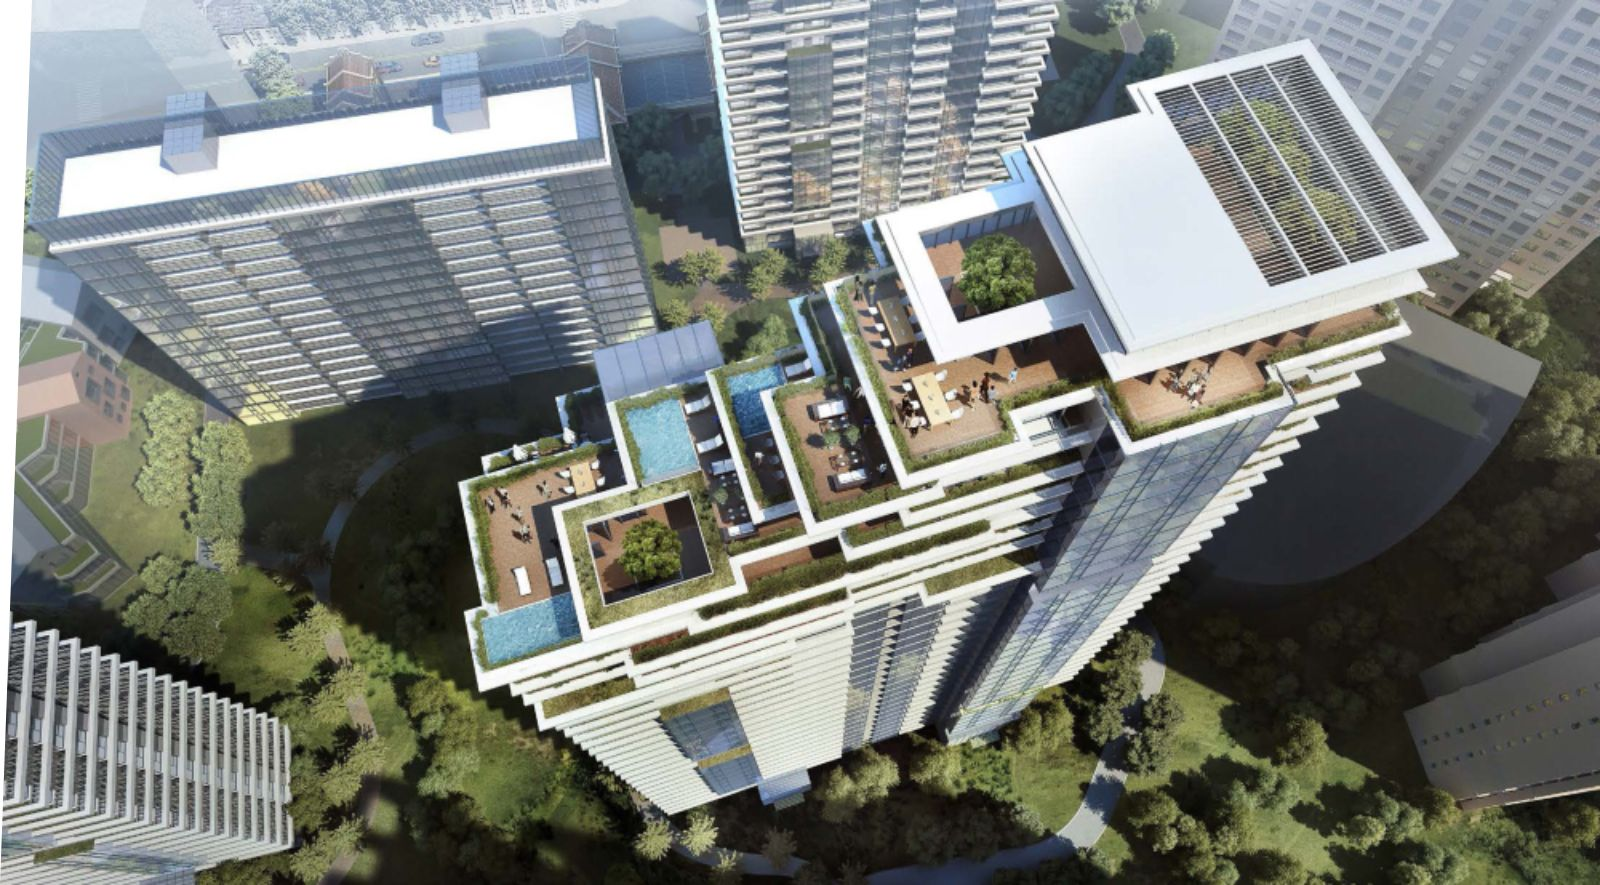 Citic Pacific Residence Phase II